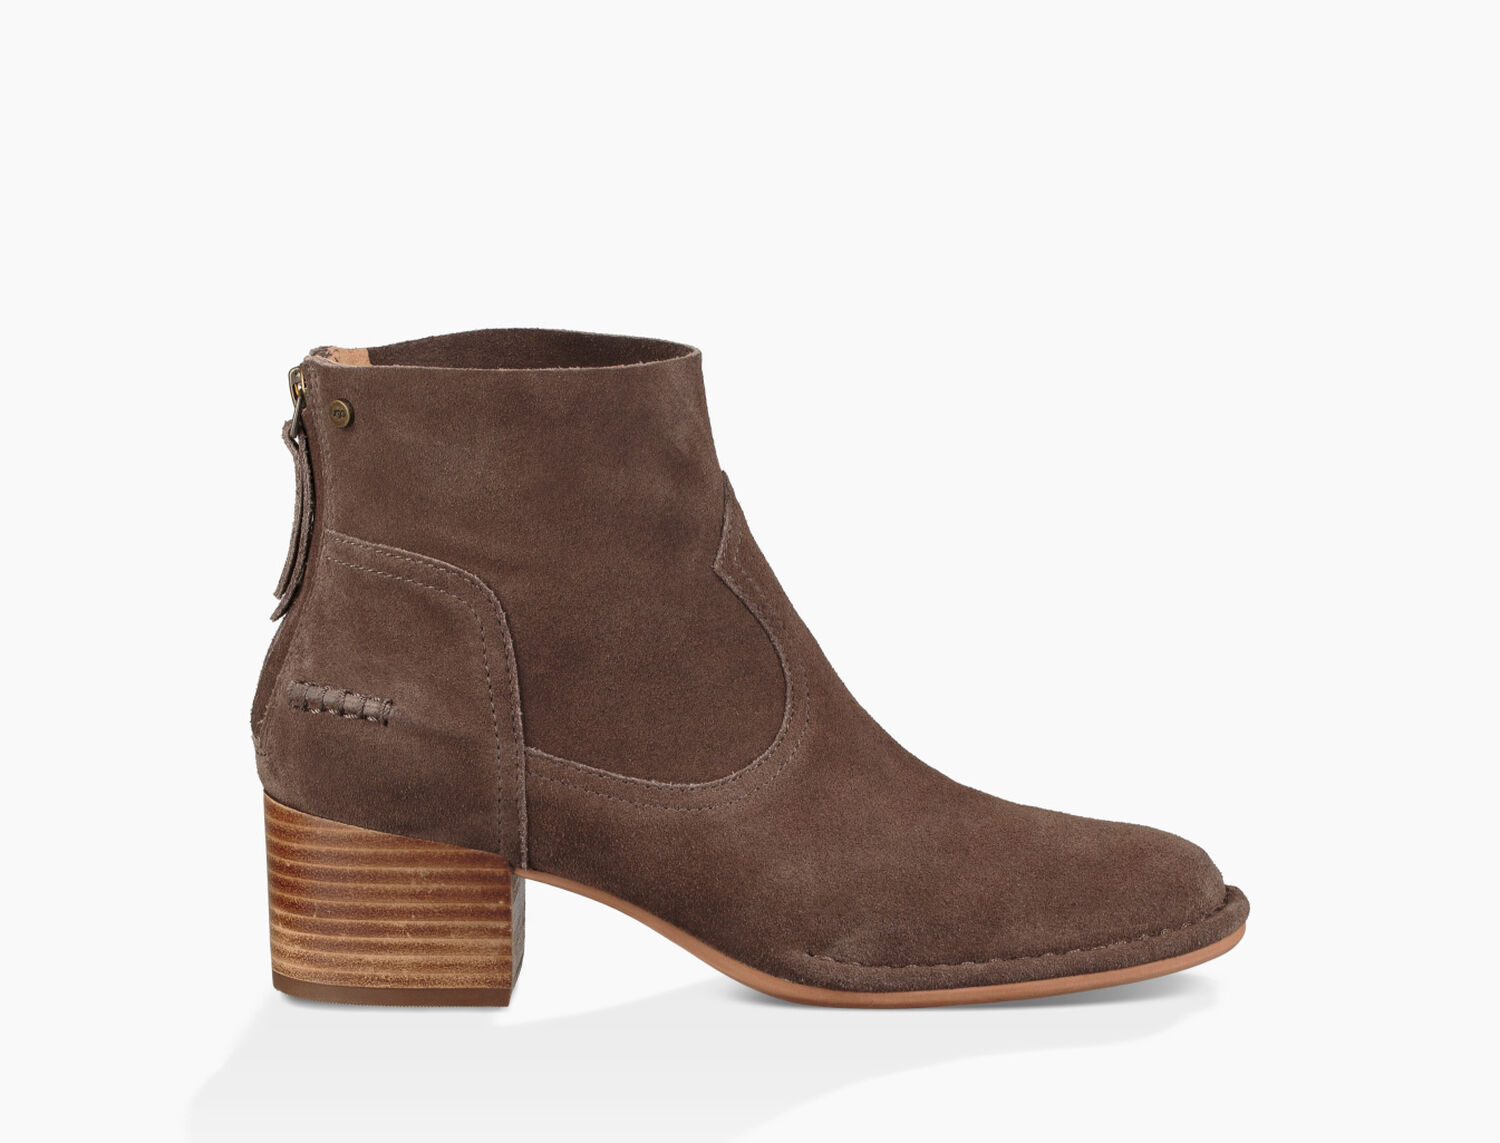 201103e5858 Women's Share this product Bandara Ankle Boot